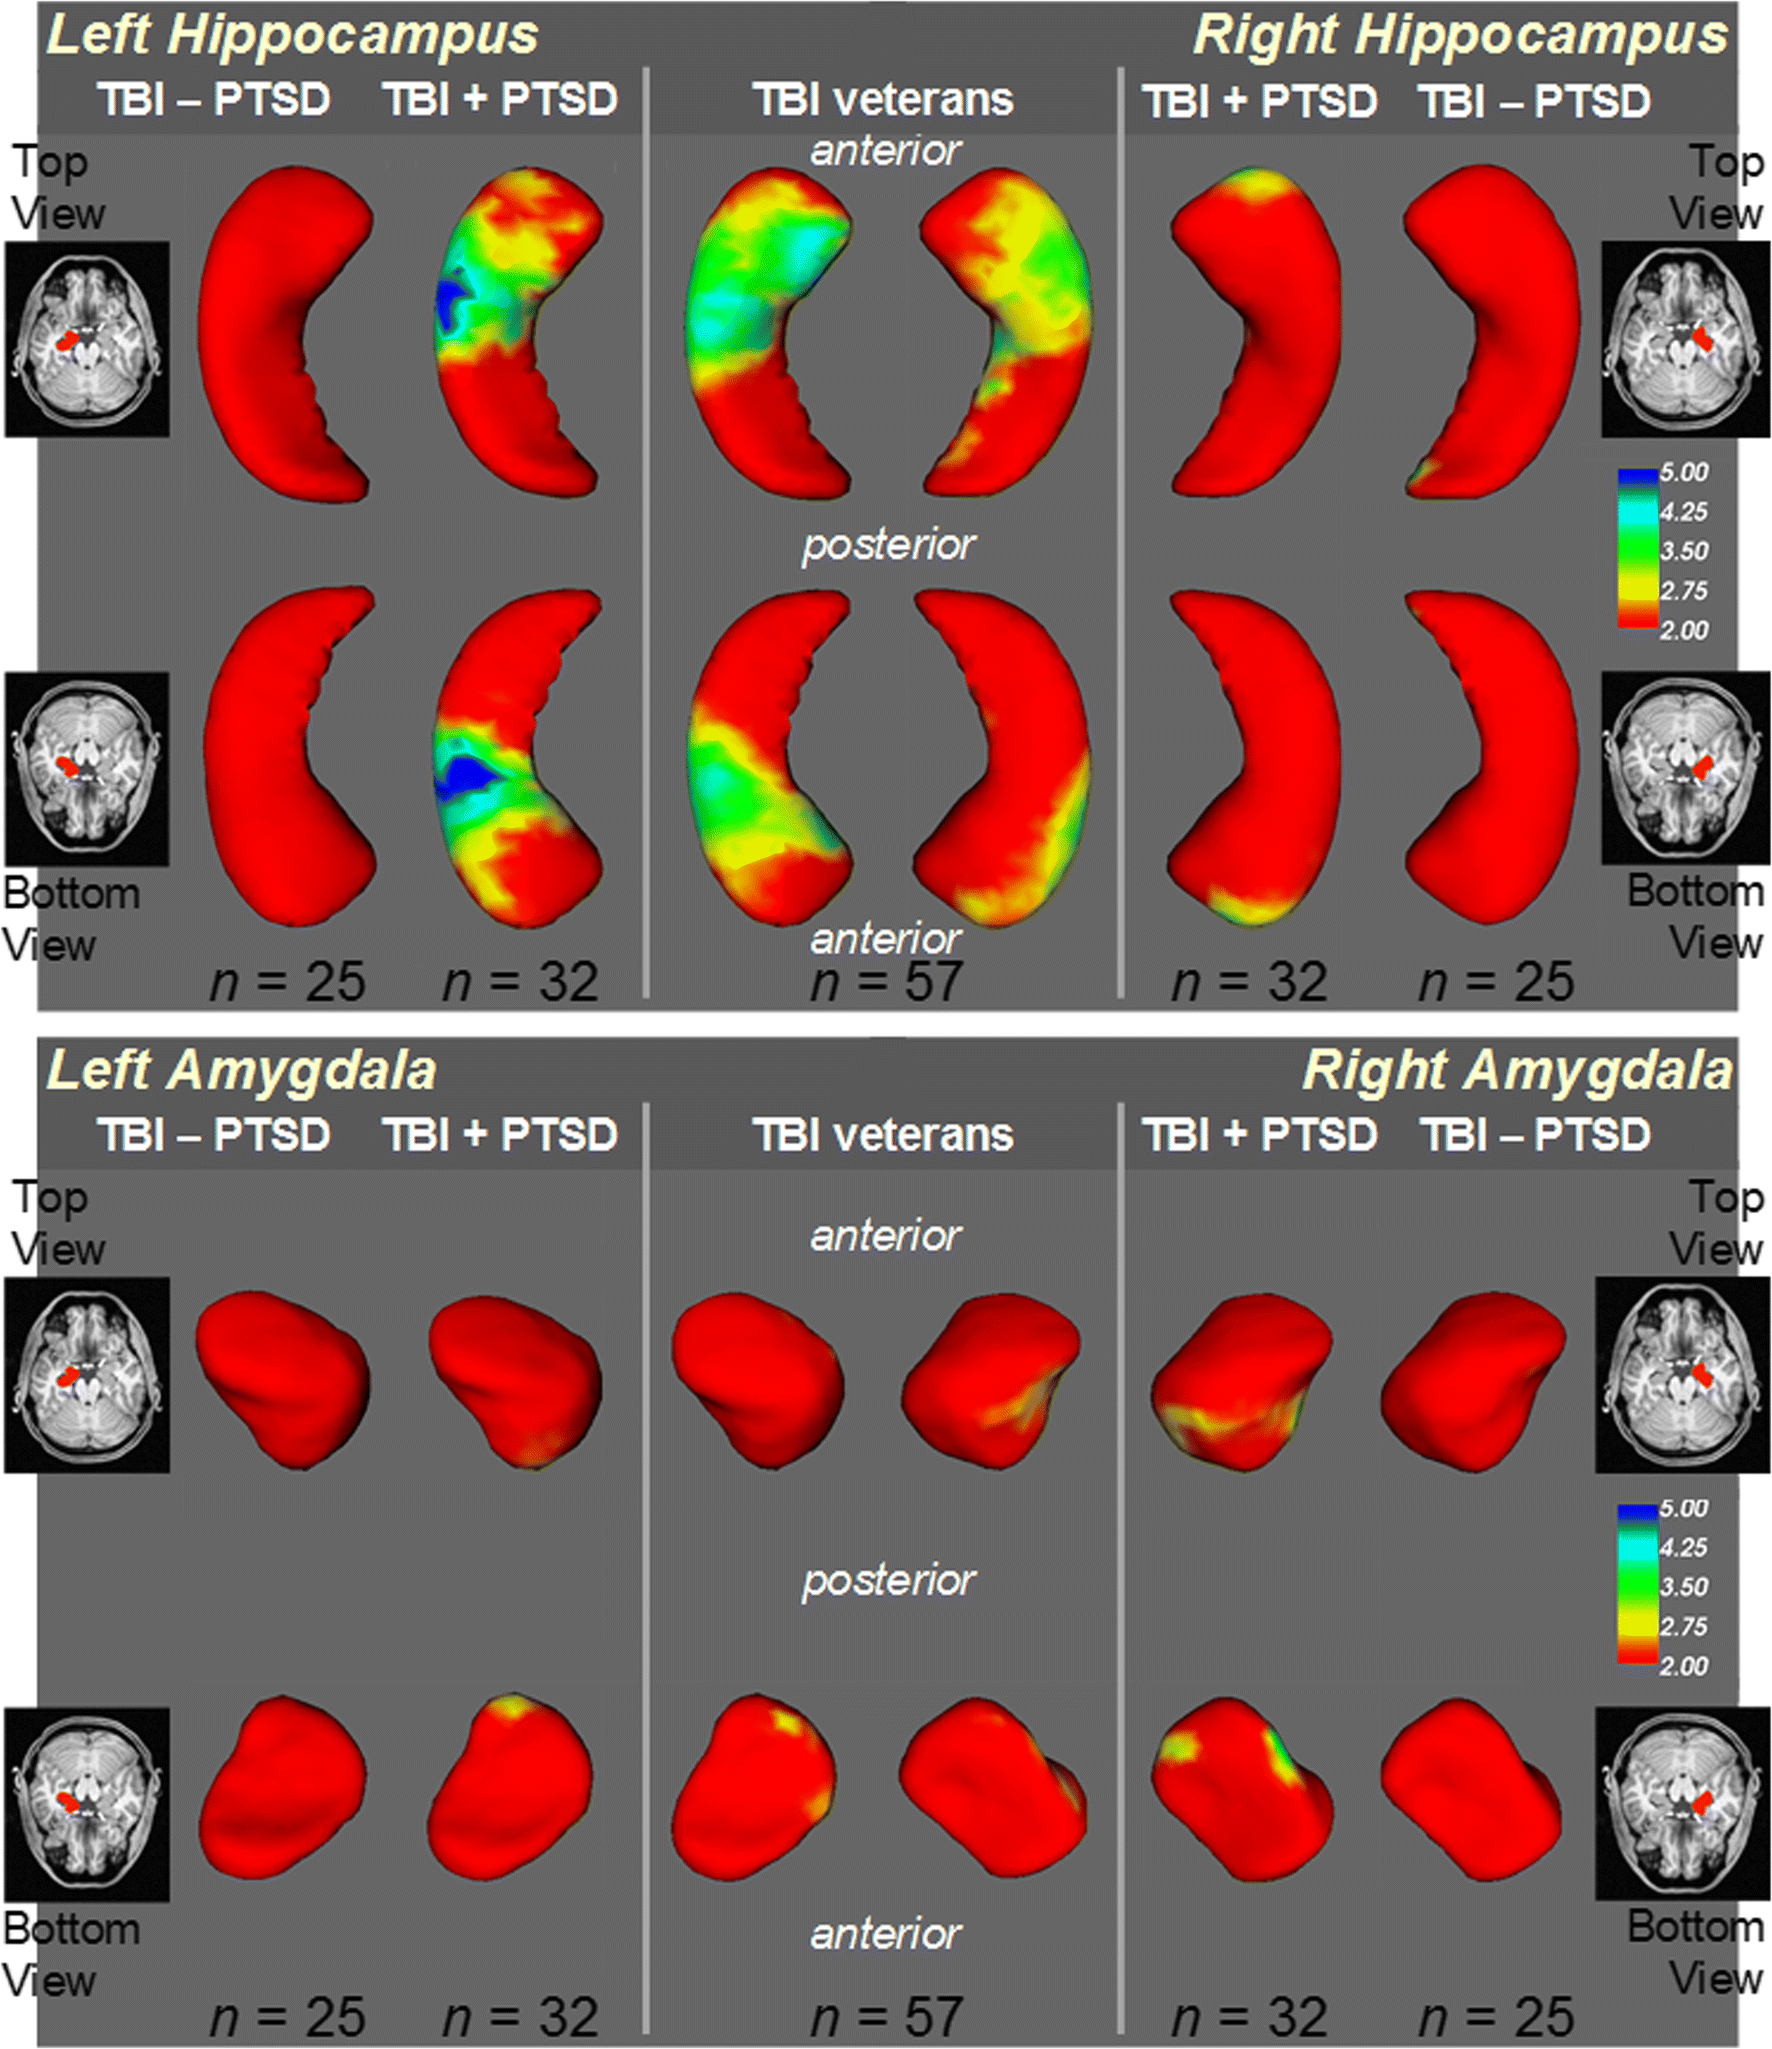 Volume and shape analysis of the Hippocampus and amygdala in